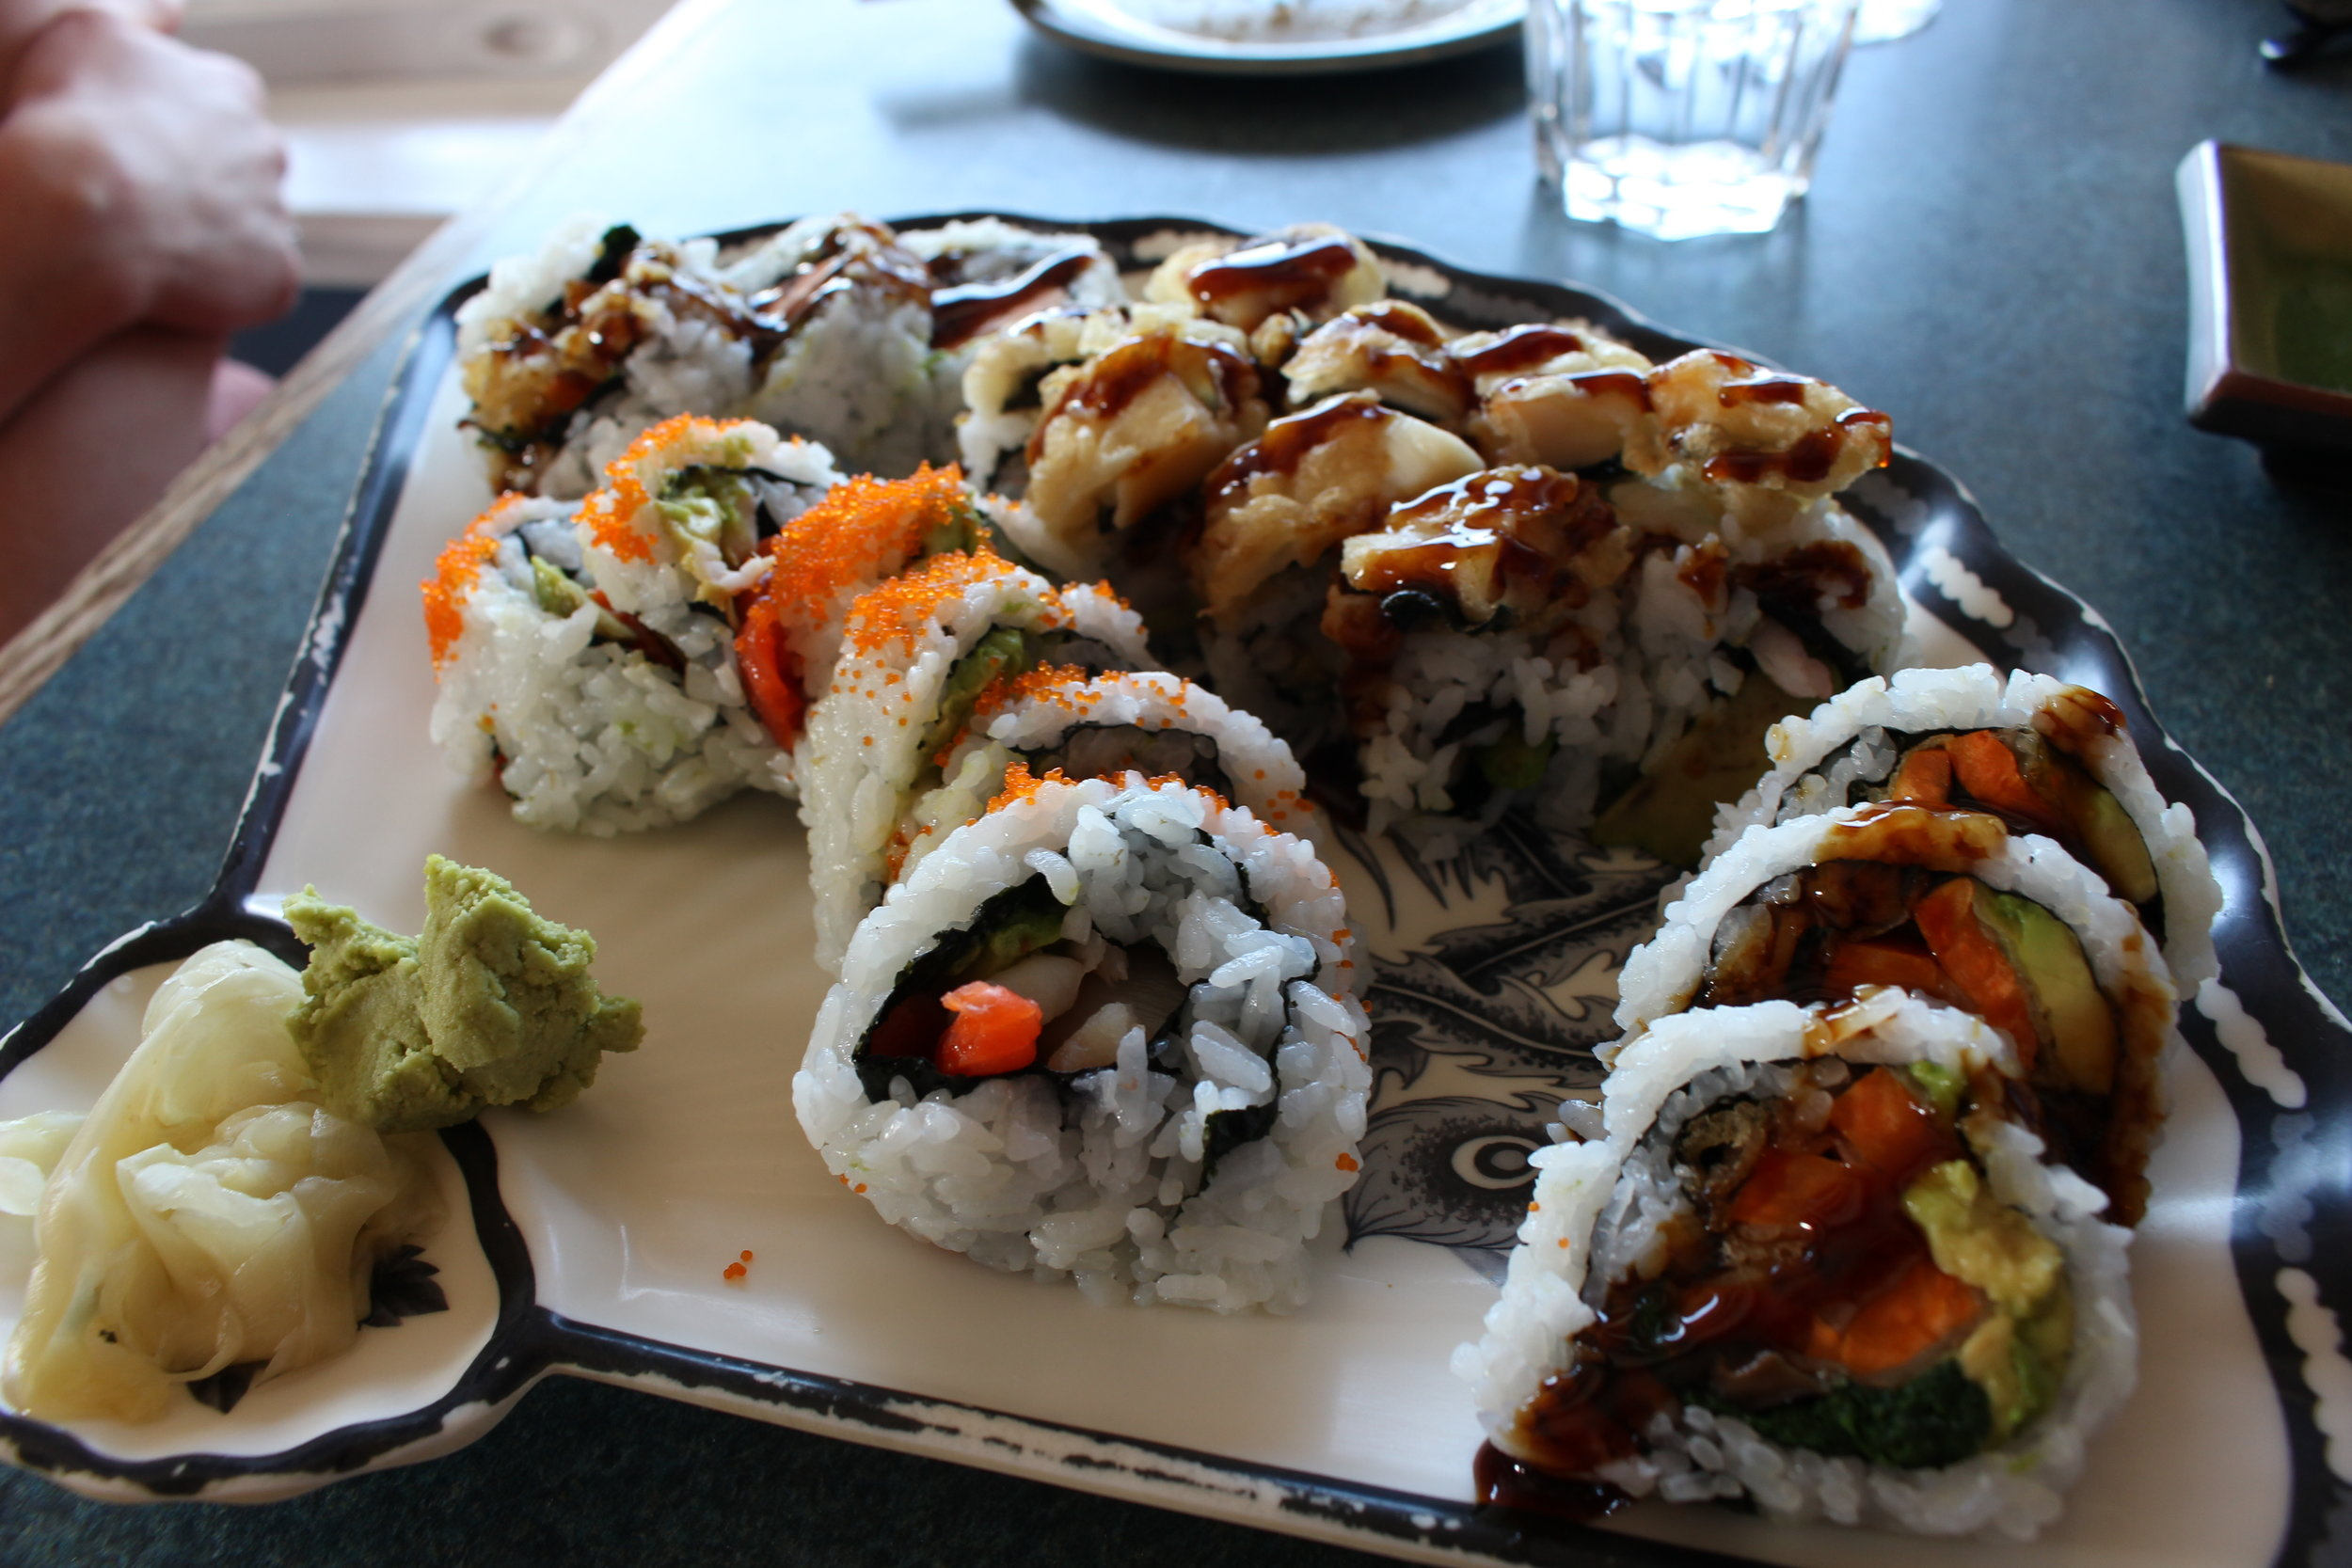 Our three rolls that were all equally delicious!